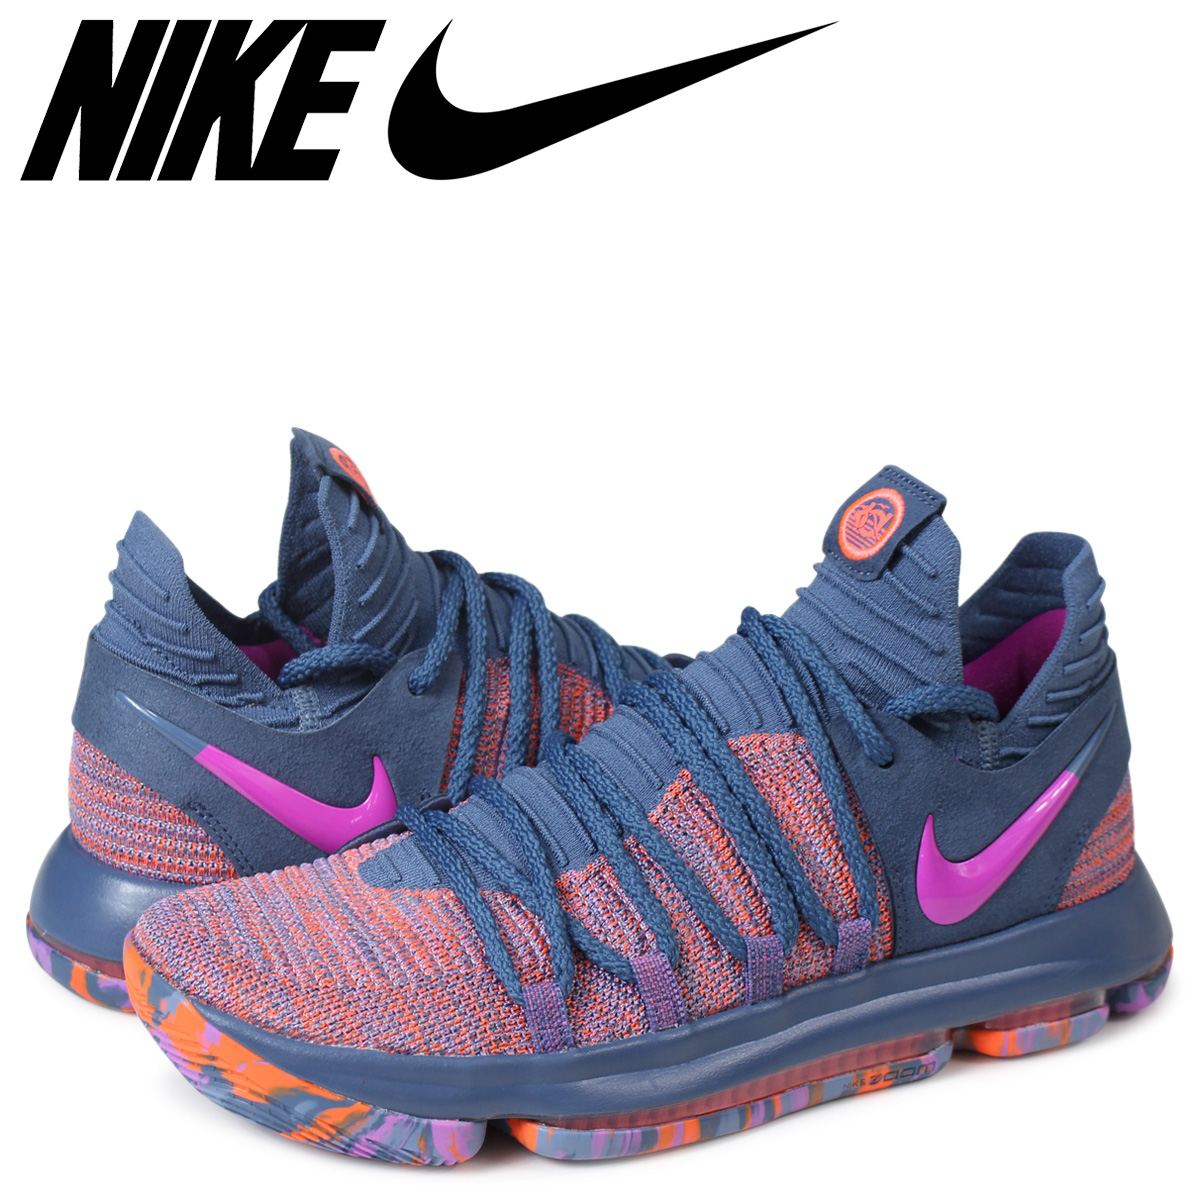 a3988f3dcdf2 Whats up Sports  NIKE ZOOM KD 10 ALL-STAR Nike KD 10 sneakers men ...